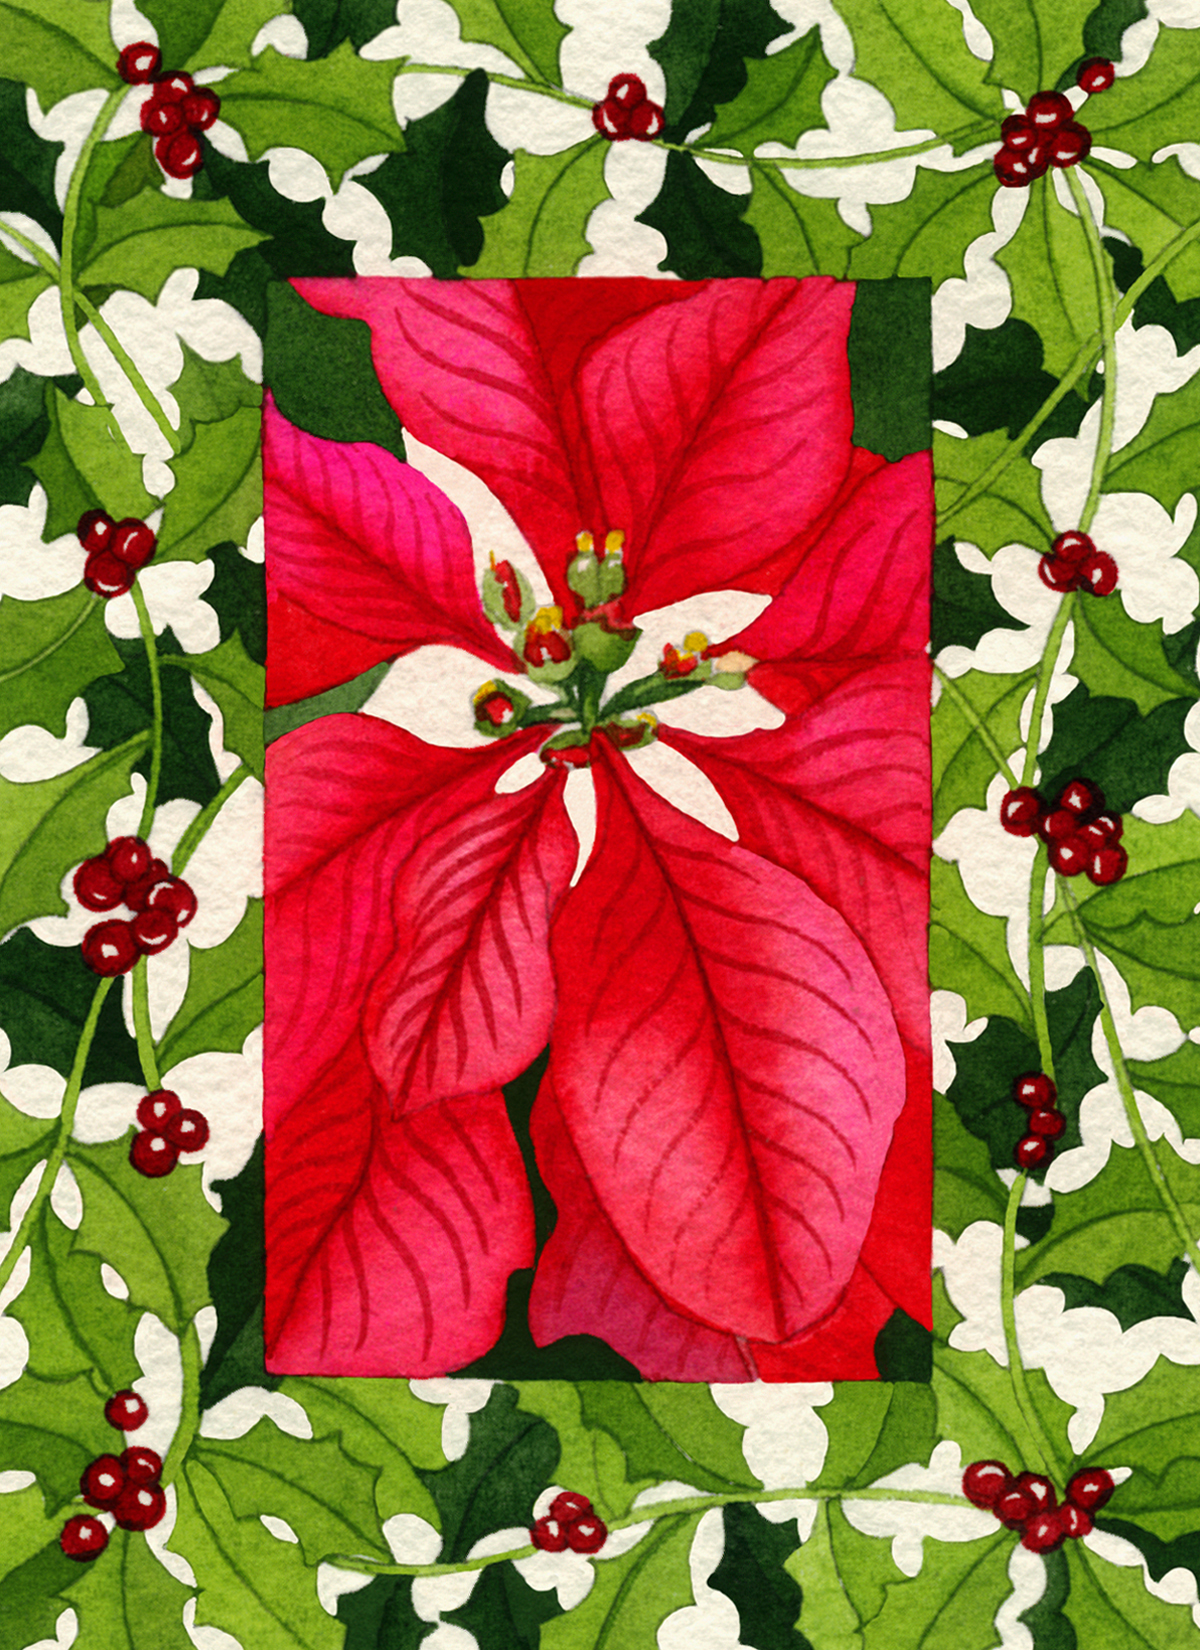 Poinsettia and Holly #1